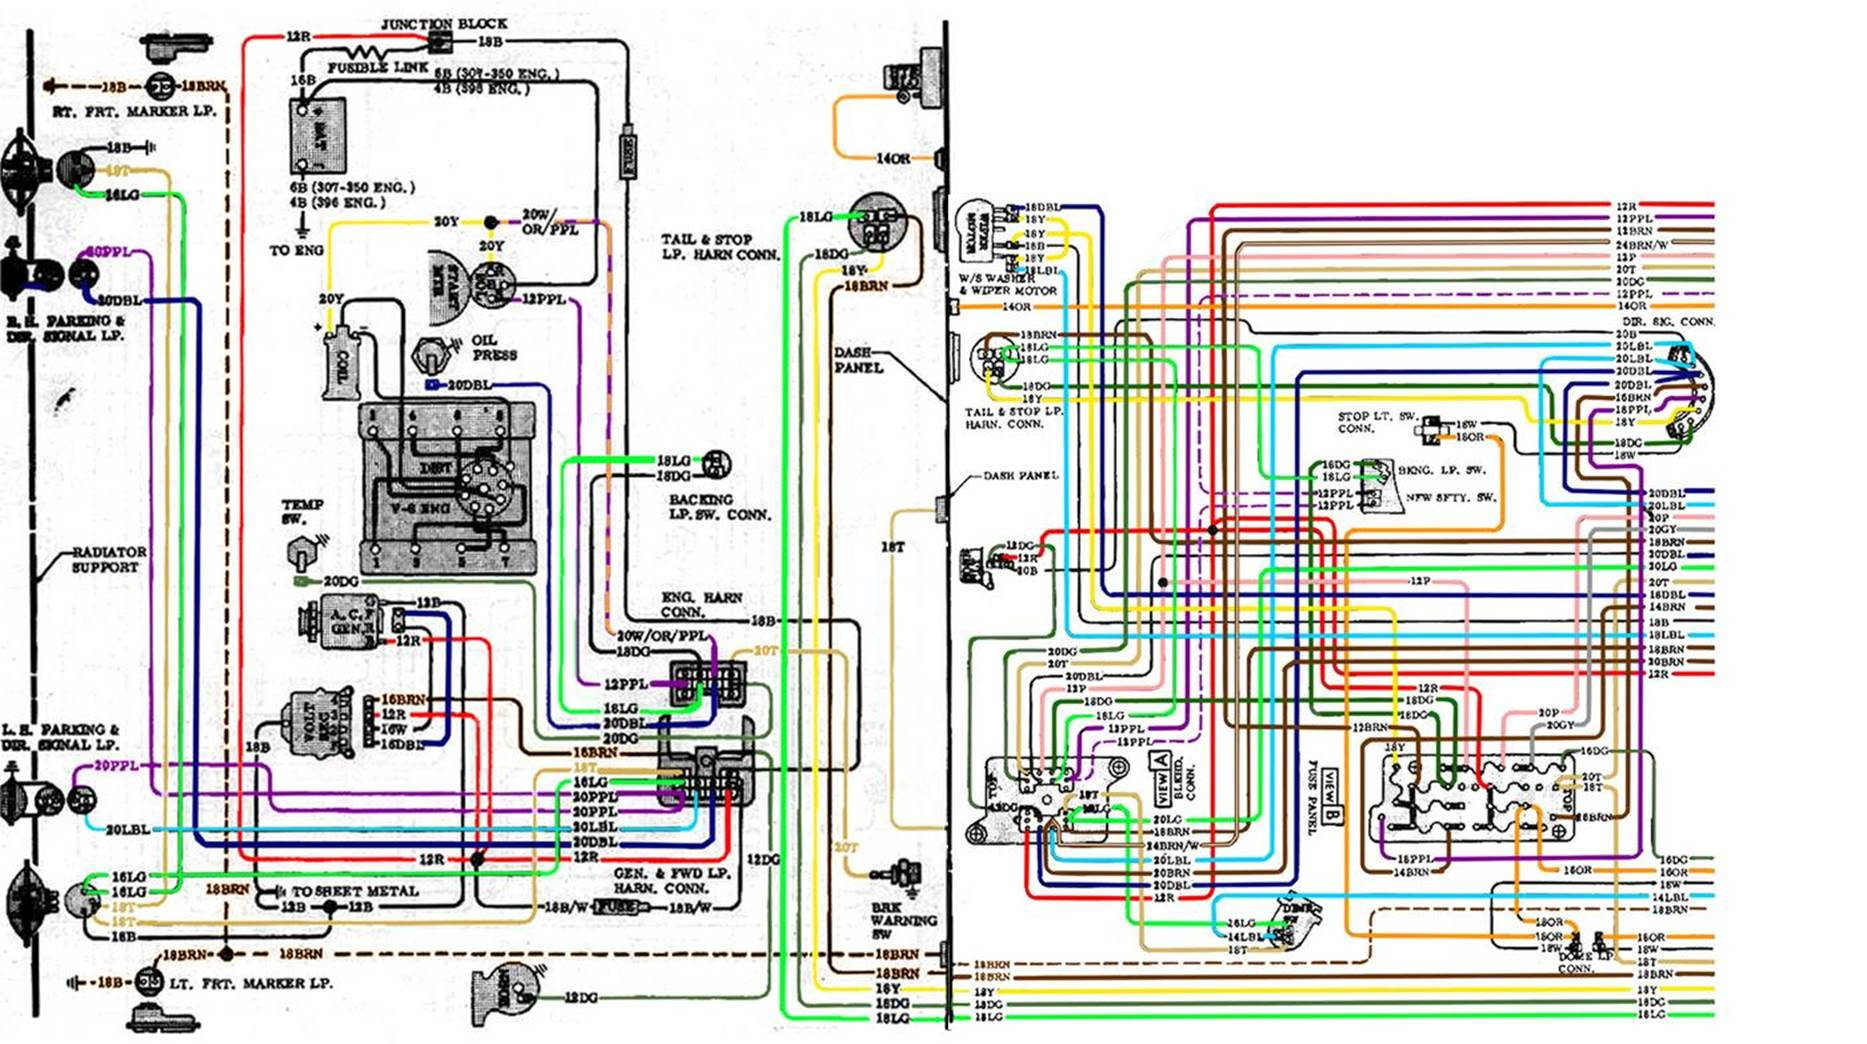 image002 67 72 chevy wiring diagram 1978 Chevy C10 Wiring-Diagram at edmiracle.co